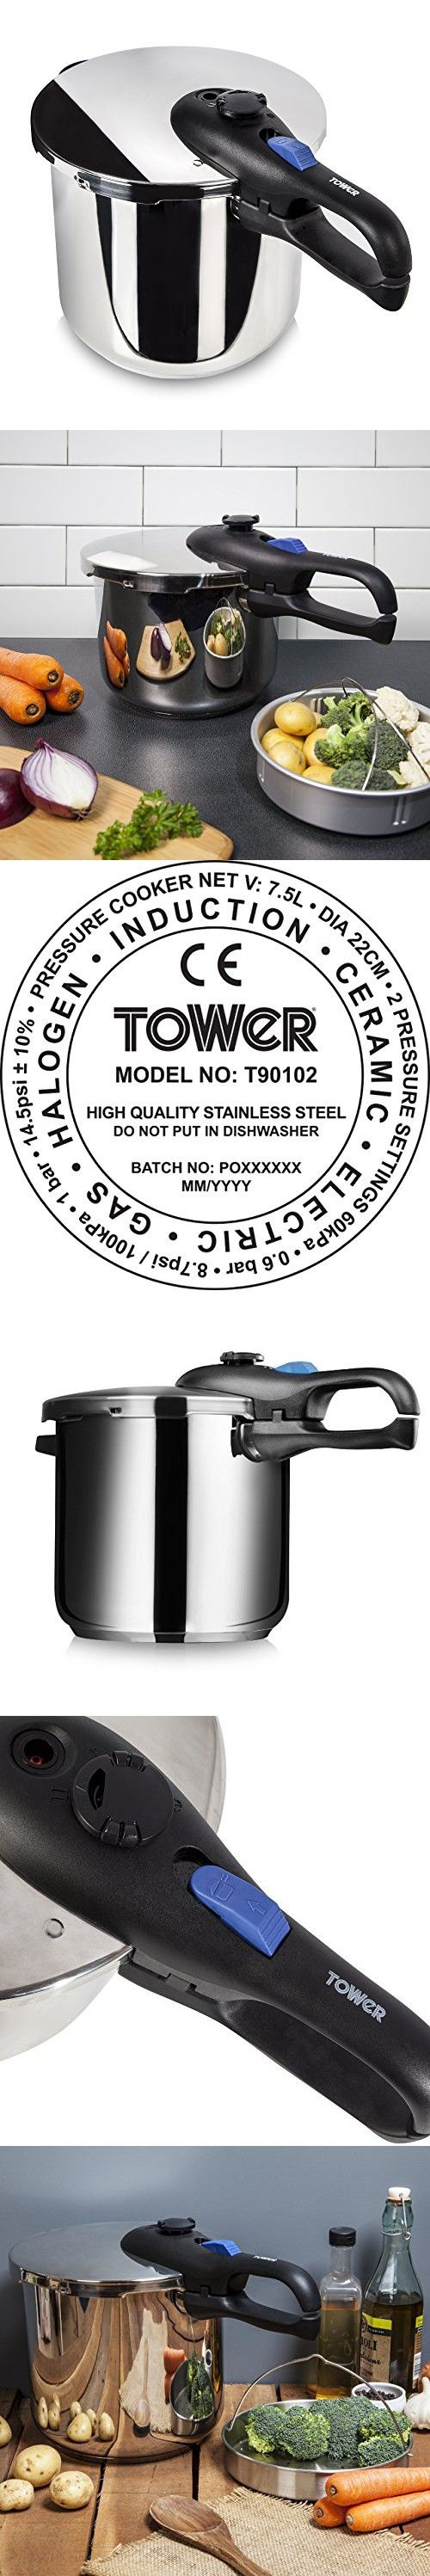 Tower Pressure Cooker, Stainless Steel, 7.5 L